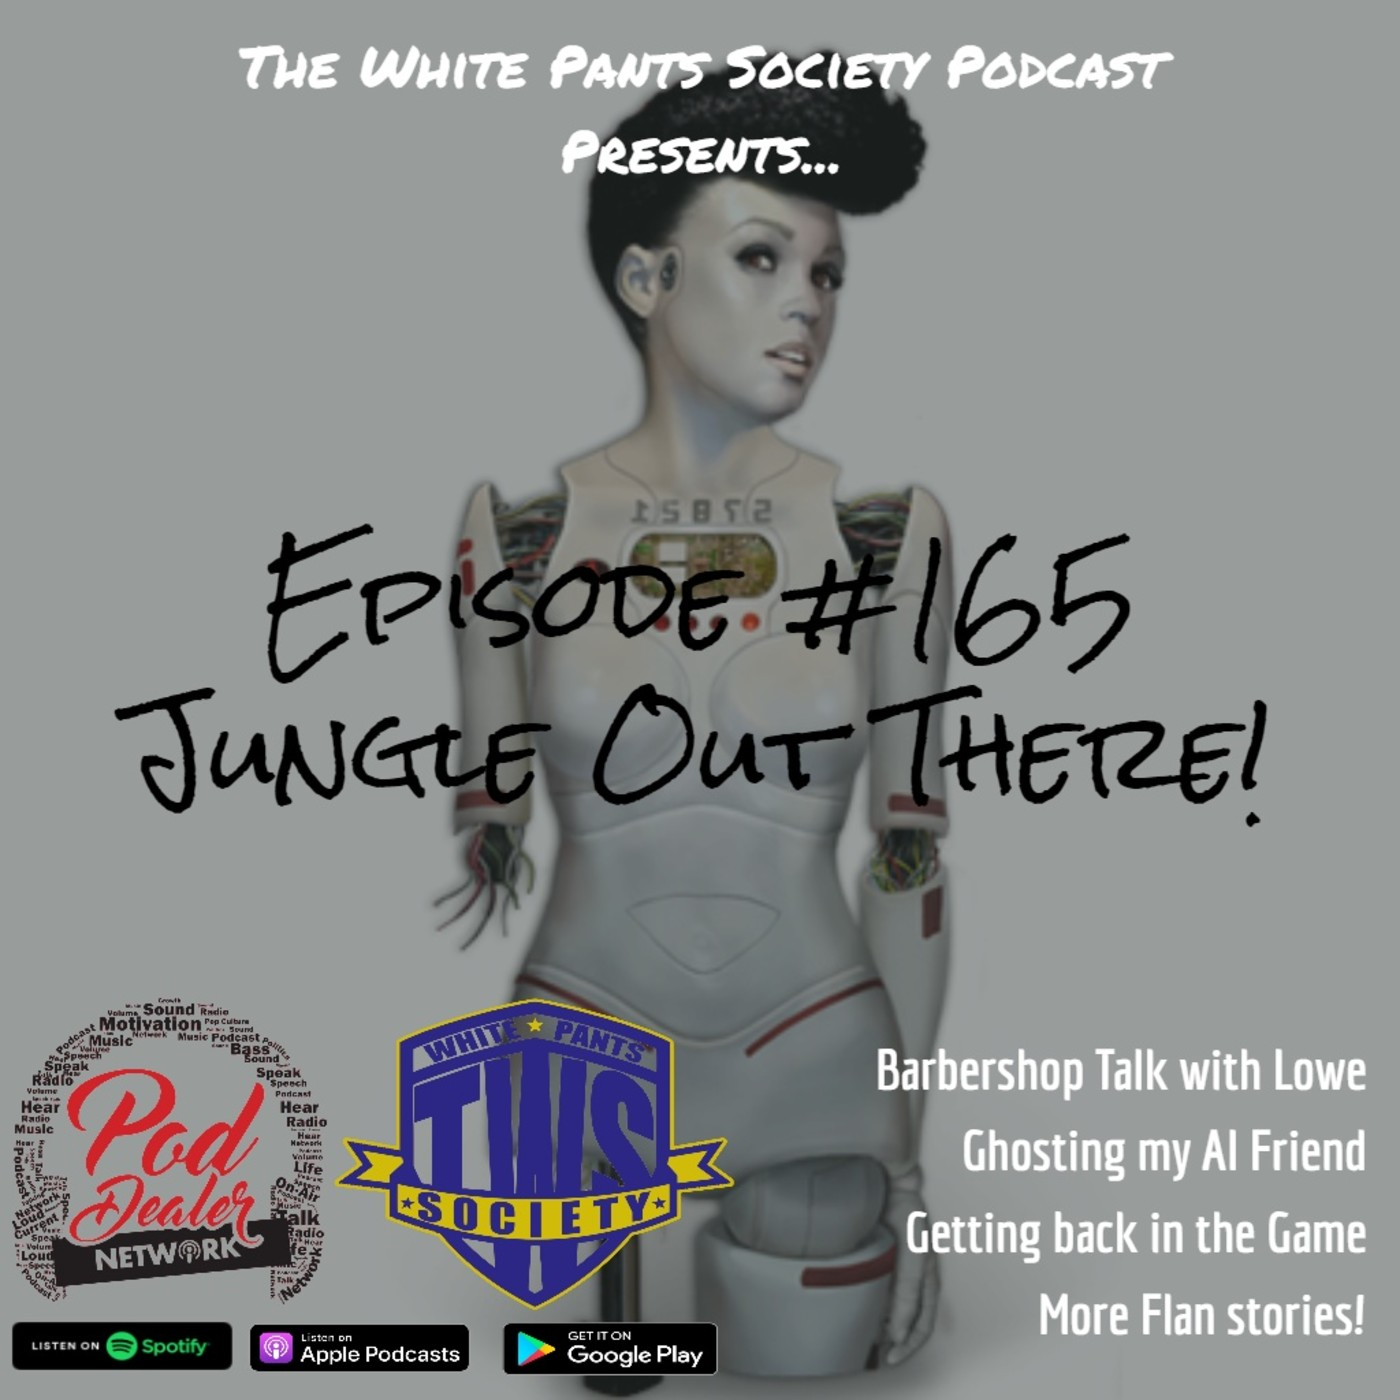 The White Pants Society Podcast